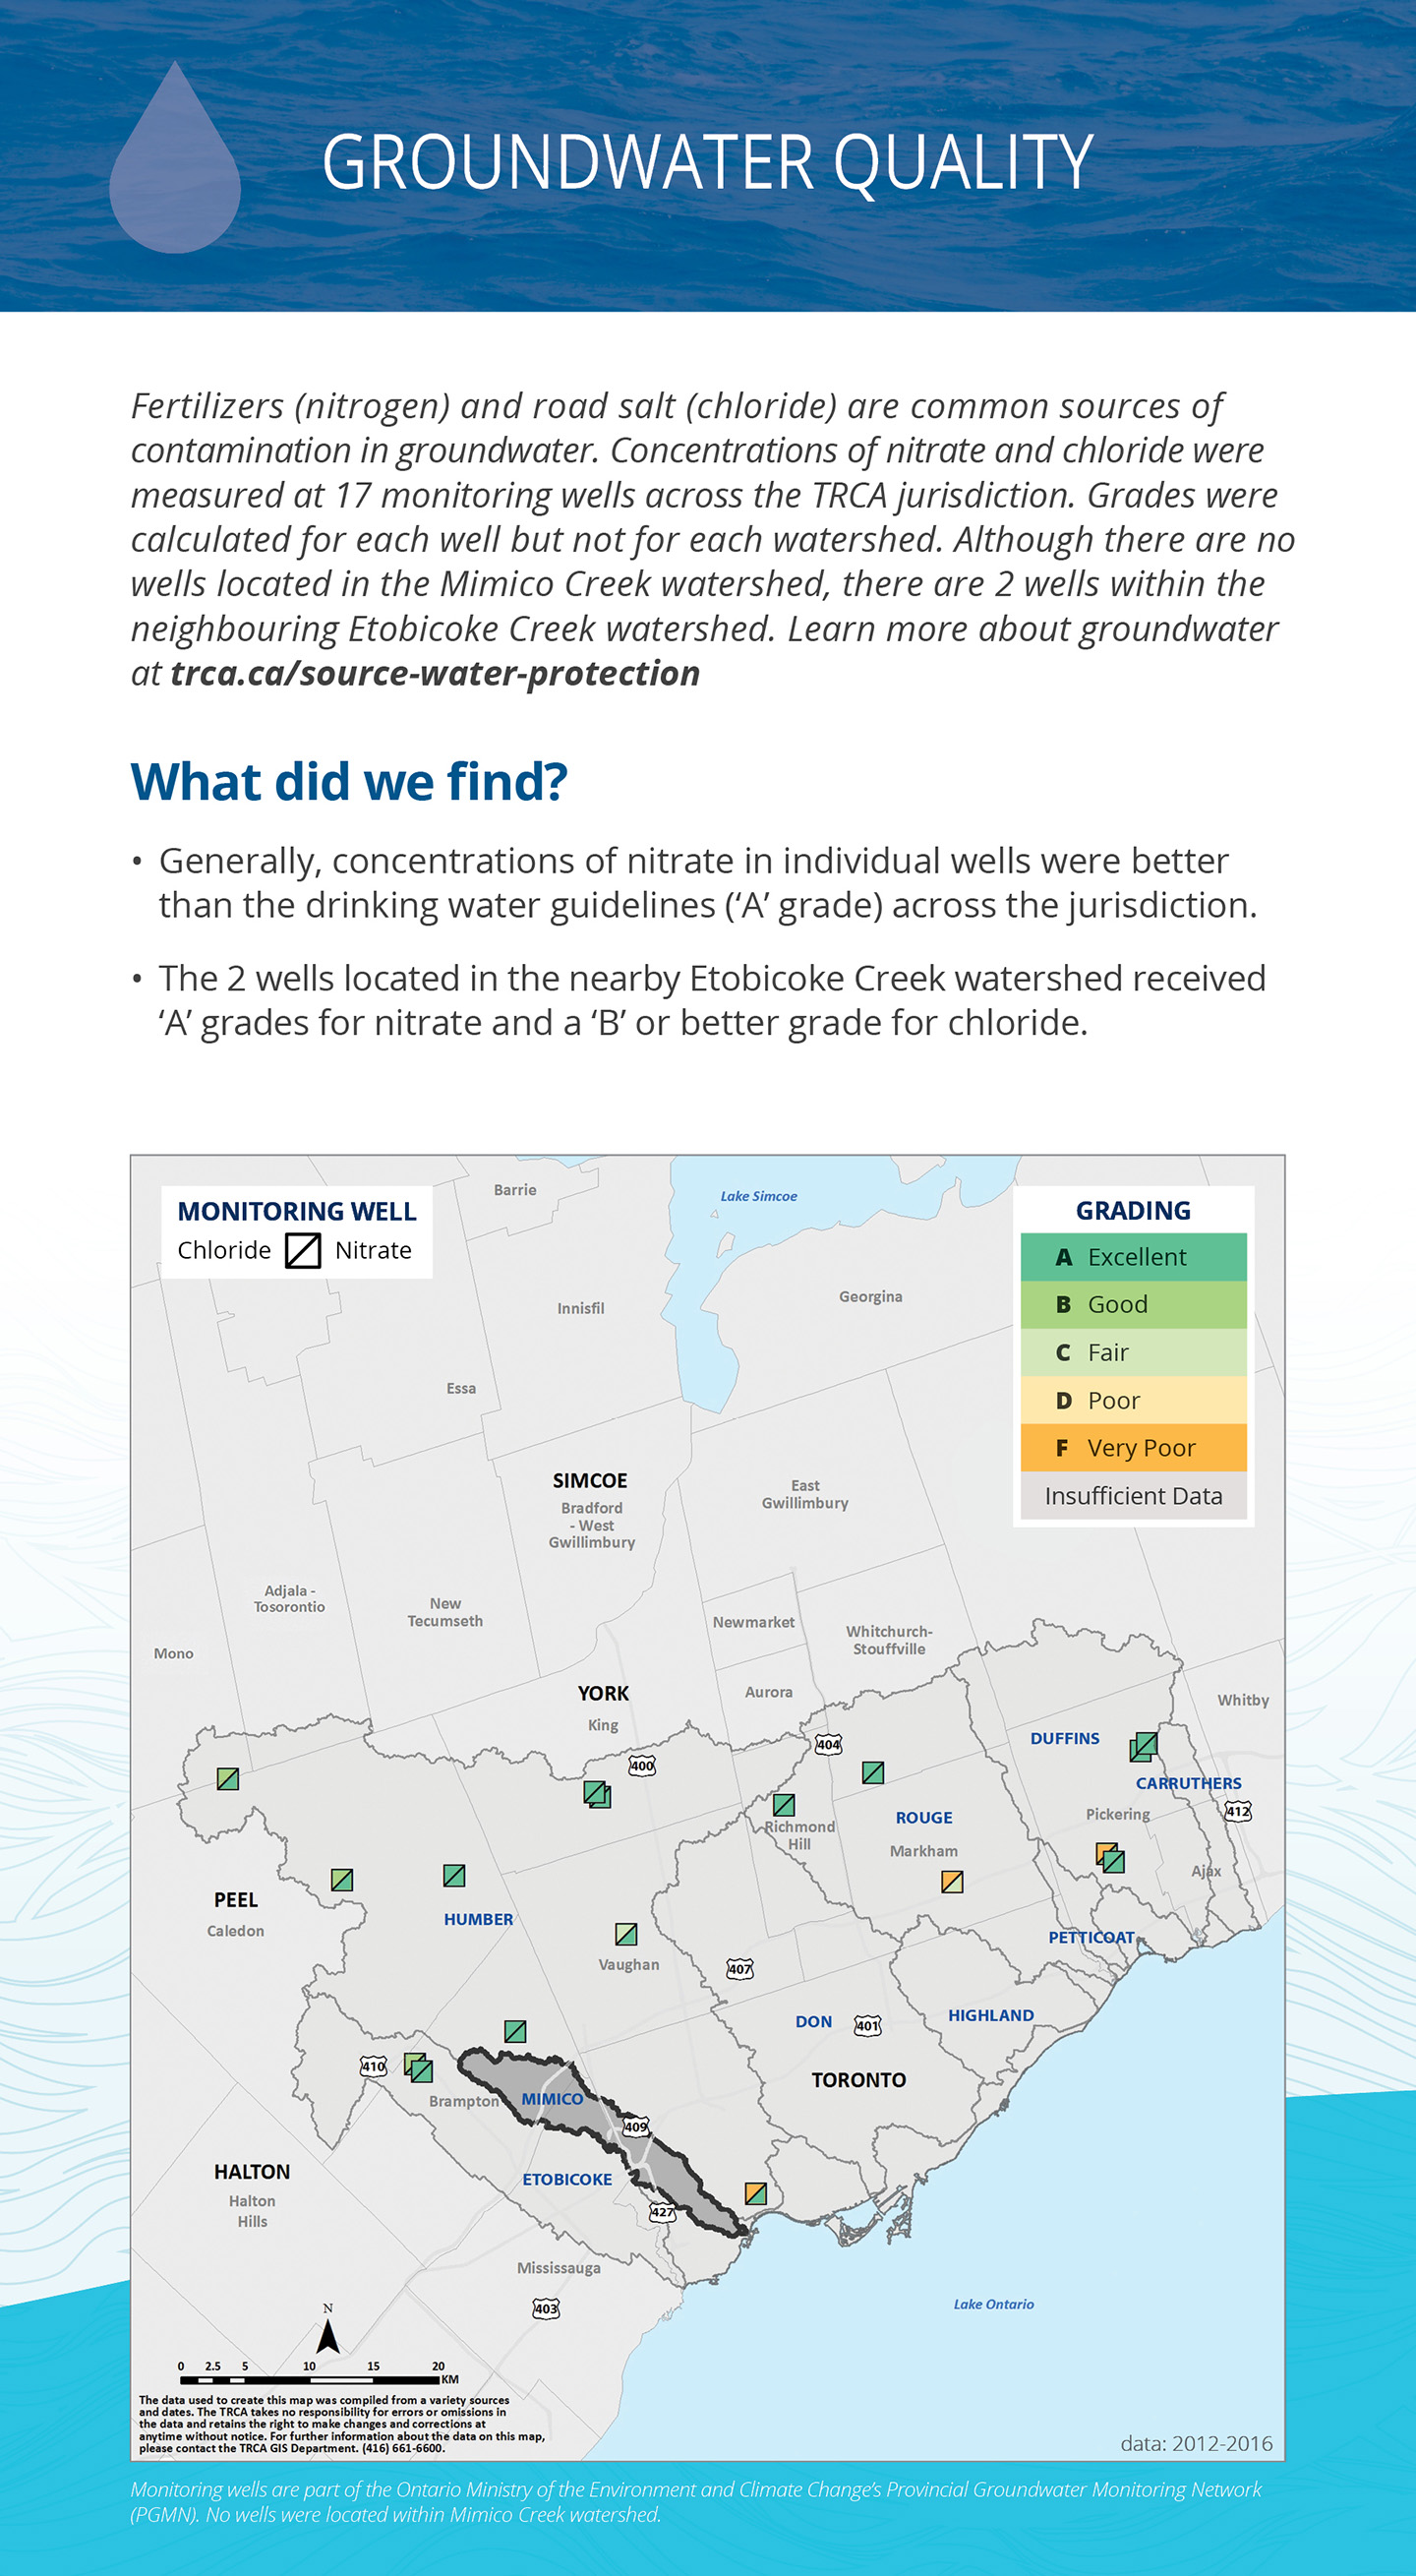 groundwater quality panel of Mimico Creek watershed report card